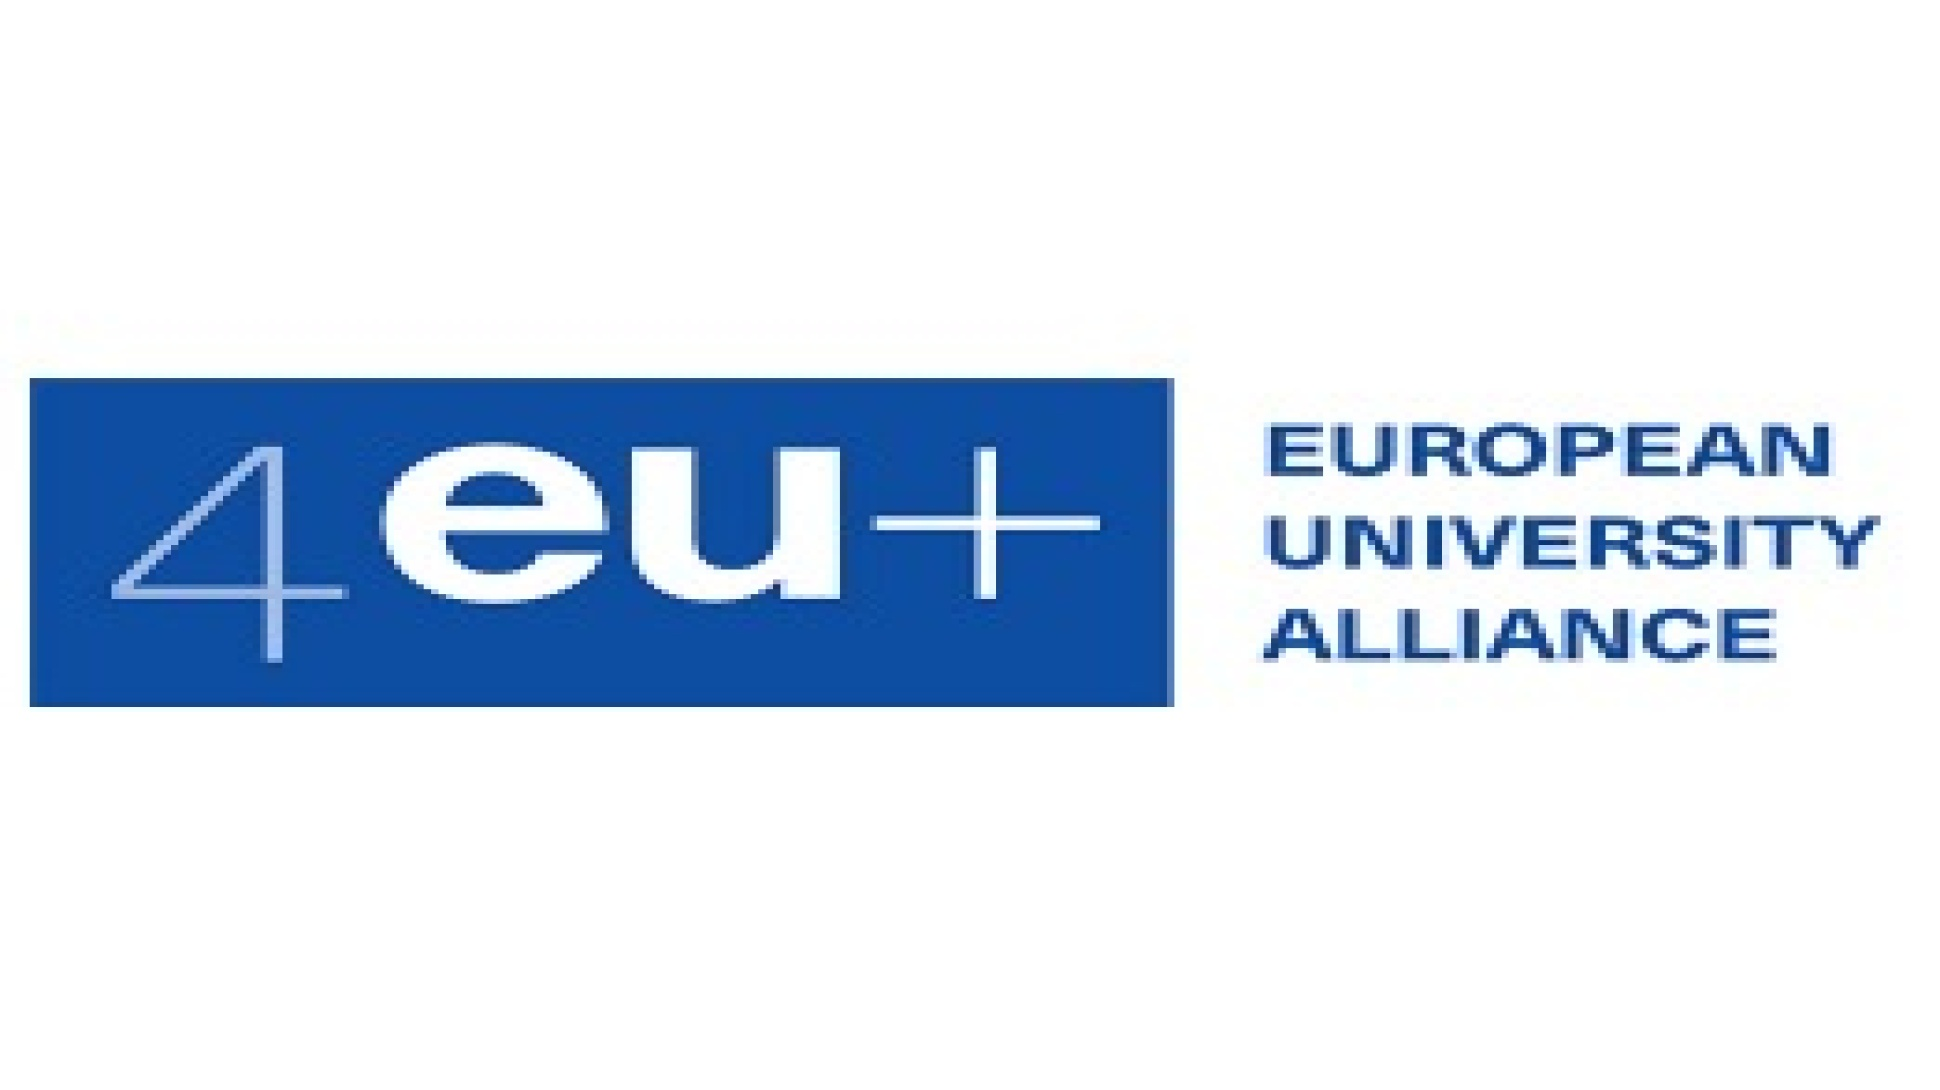 Students wish to influence the future of the 4EU+ alliance